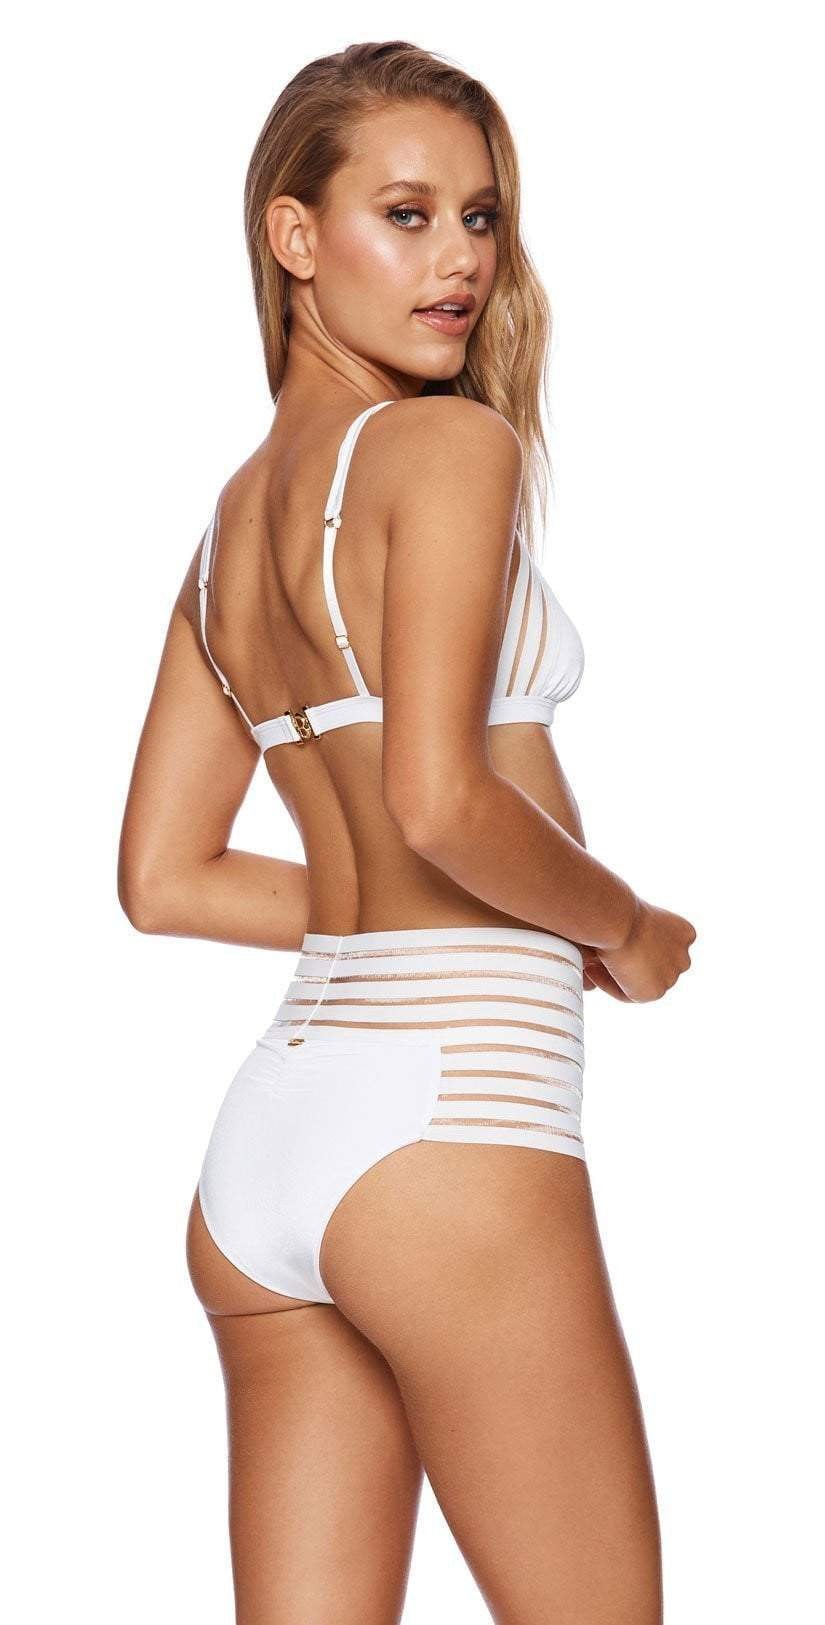 Beach Bunny Sheer Addiction High Waist Bikini Bottom in White B16125B0-WHT back view